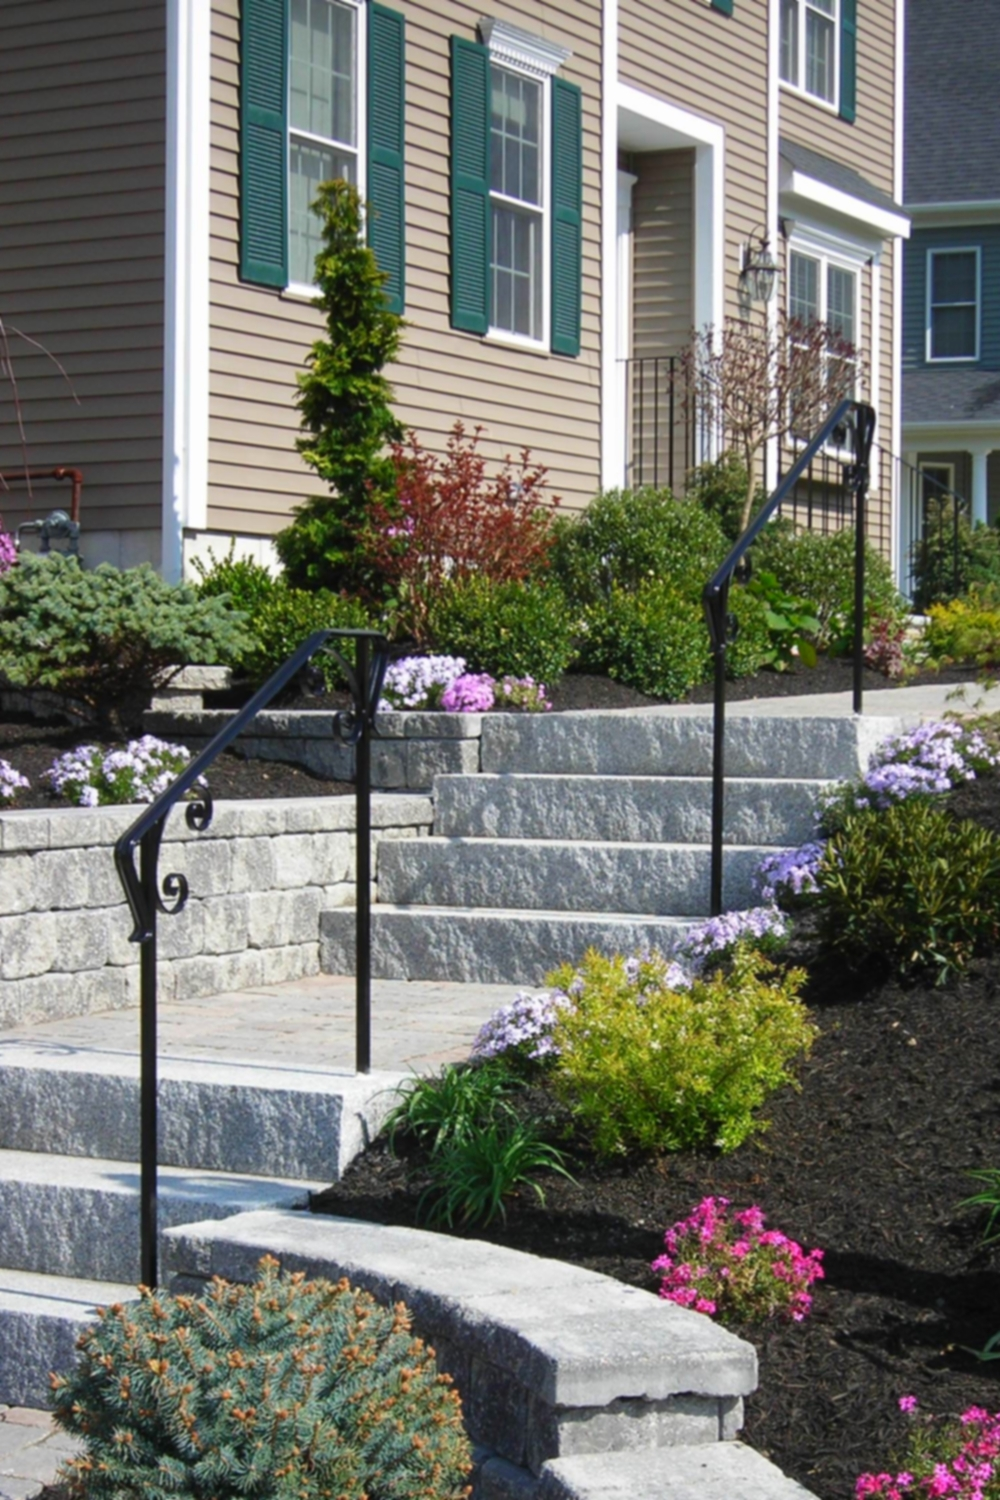 Picket-Less Railings with Decorative Scrolls